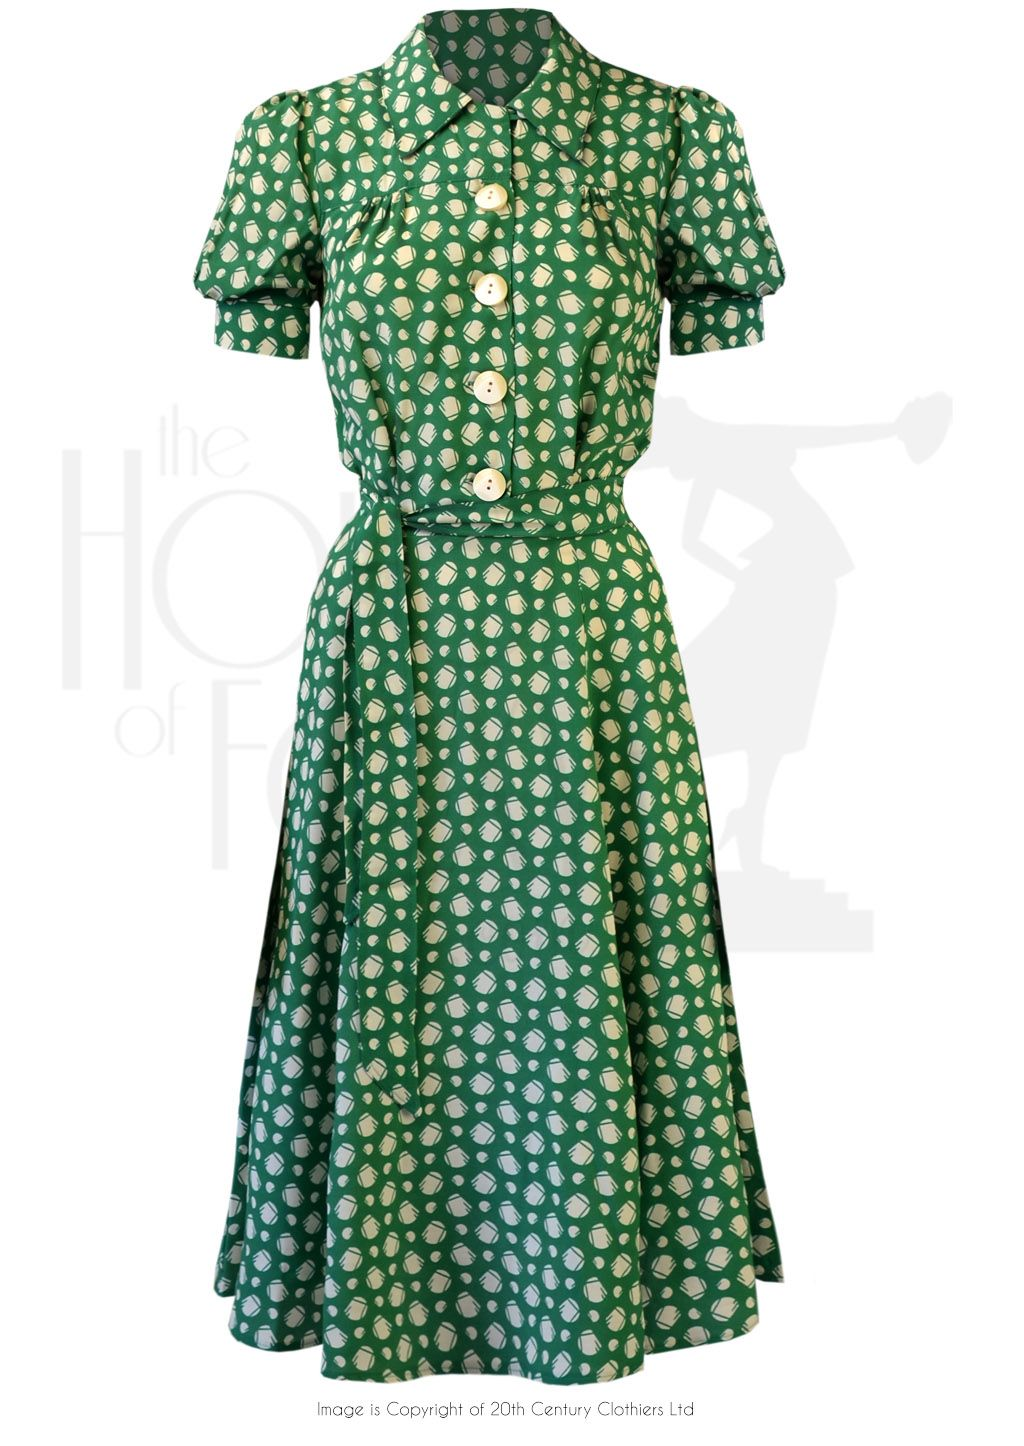 S shirt waister dress emerald deco dot love da dress